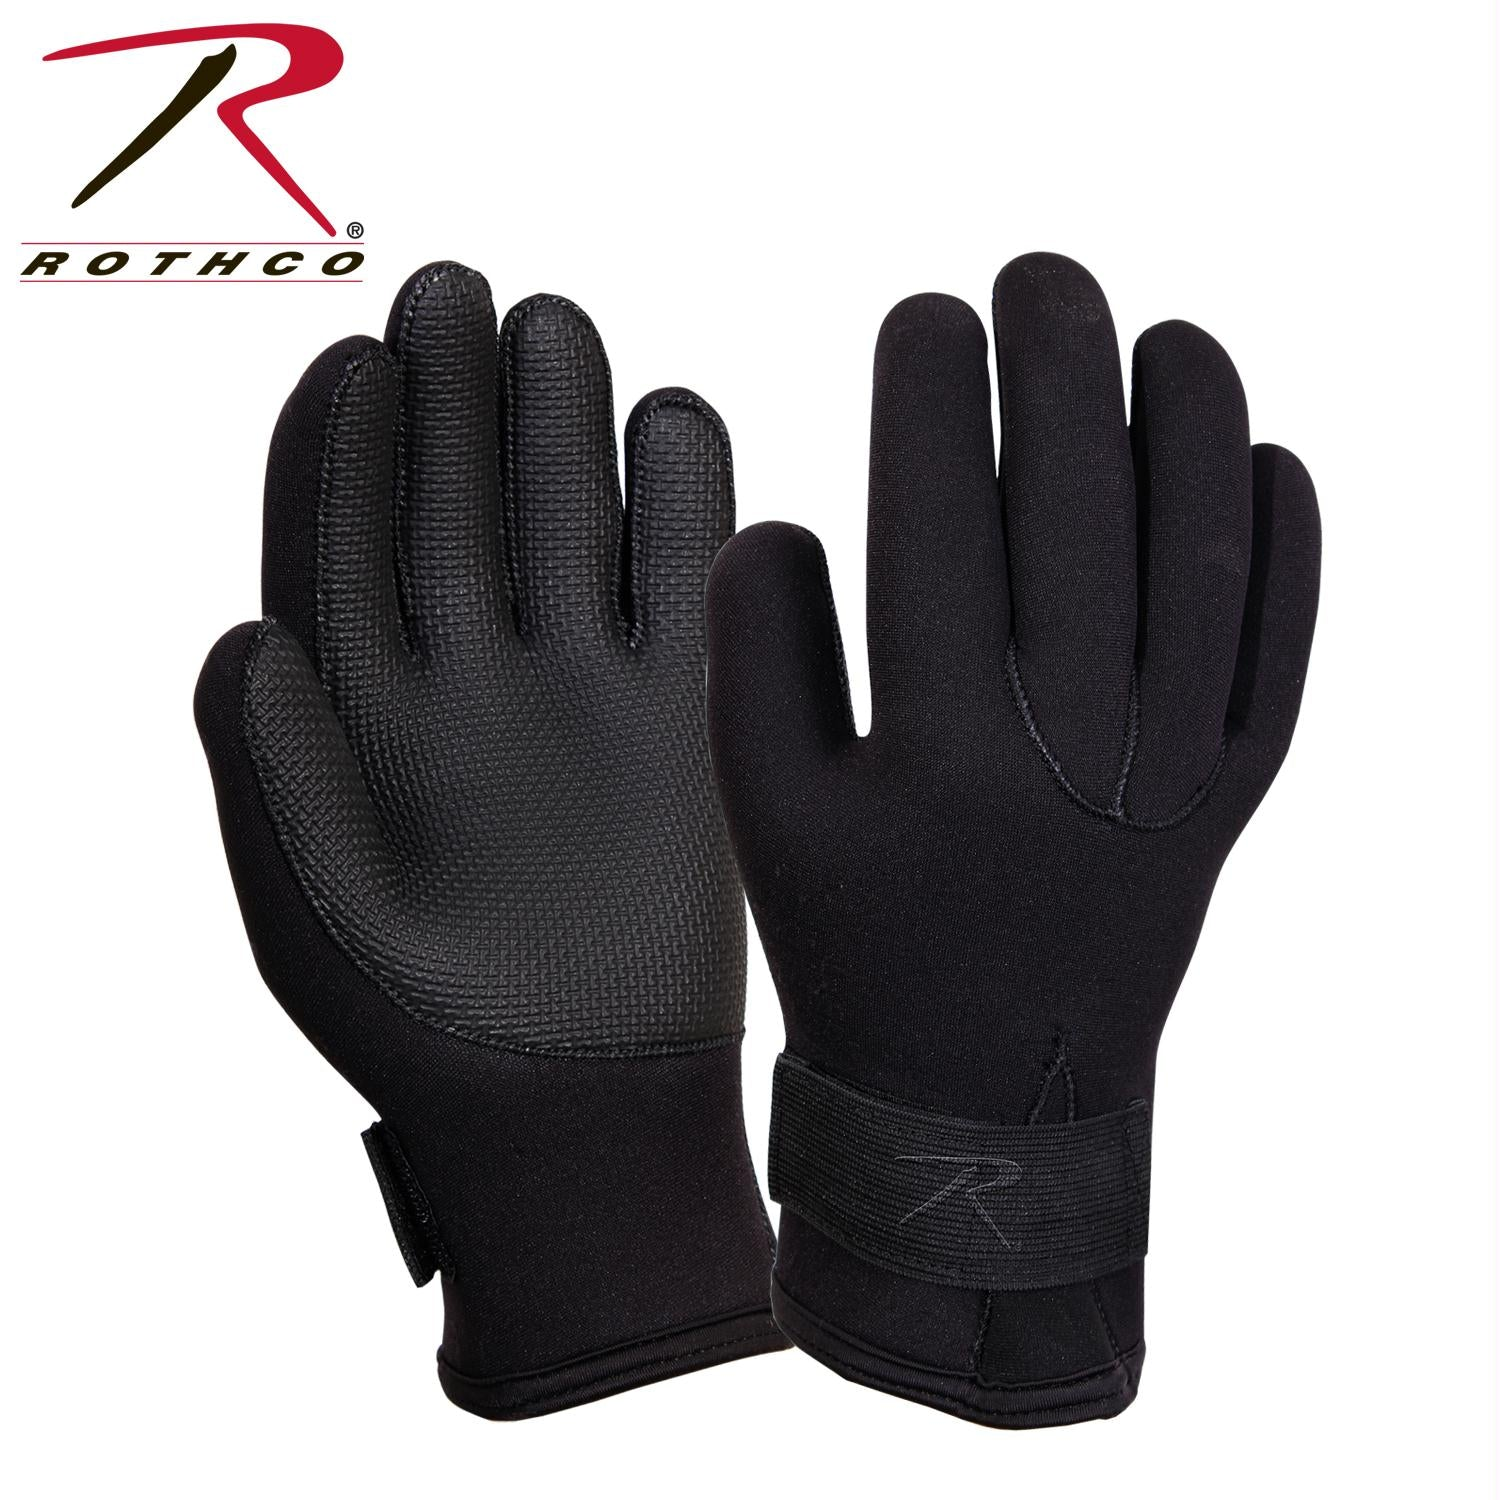 Rothco Waterproof Cold Weather Neoprene Gloves - XL